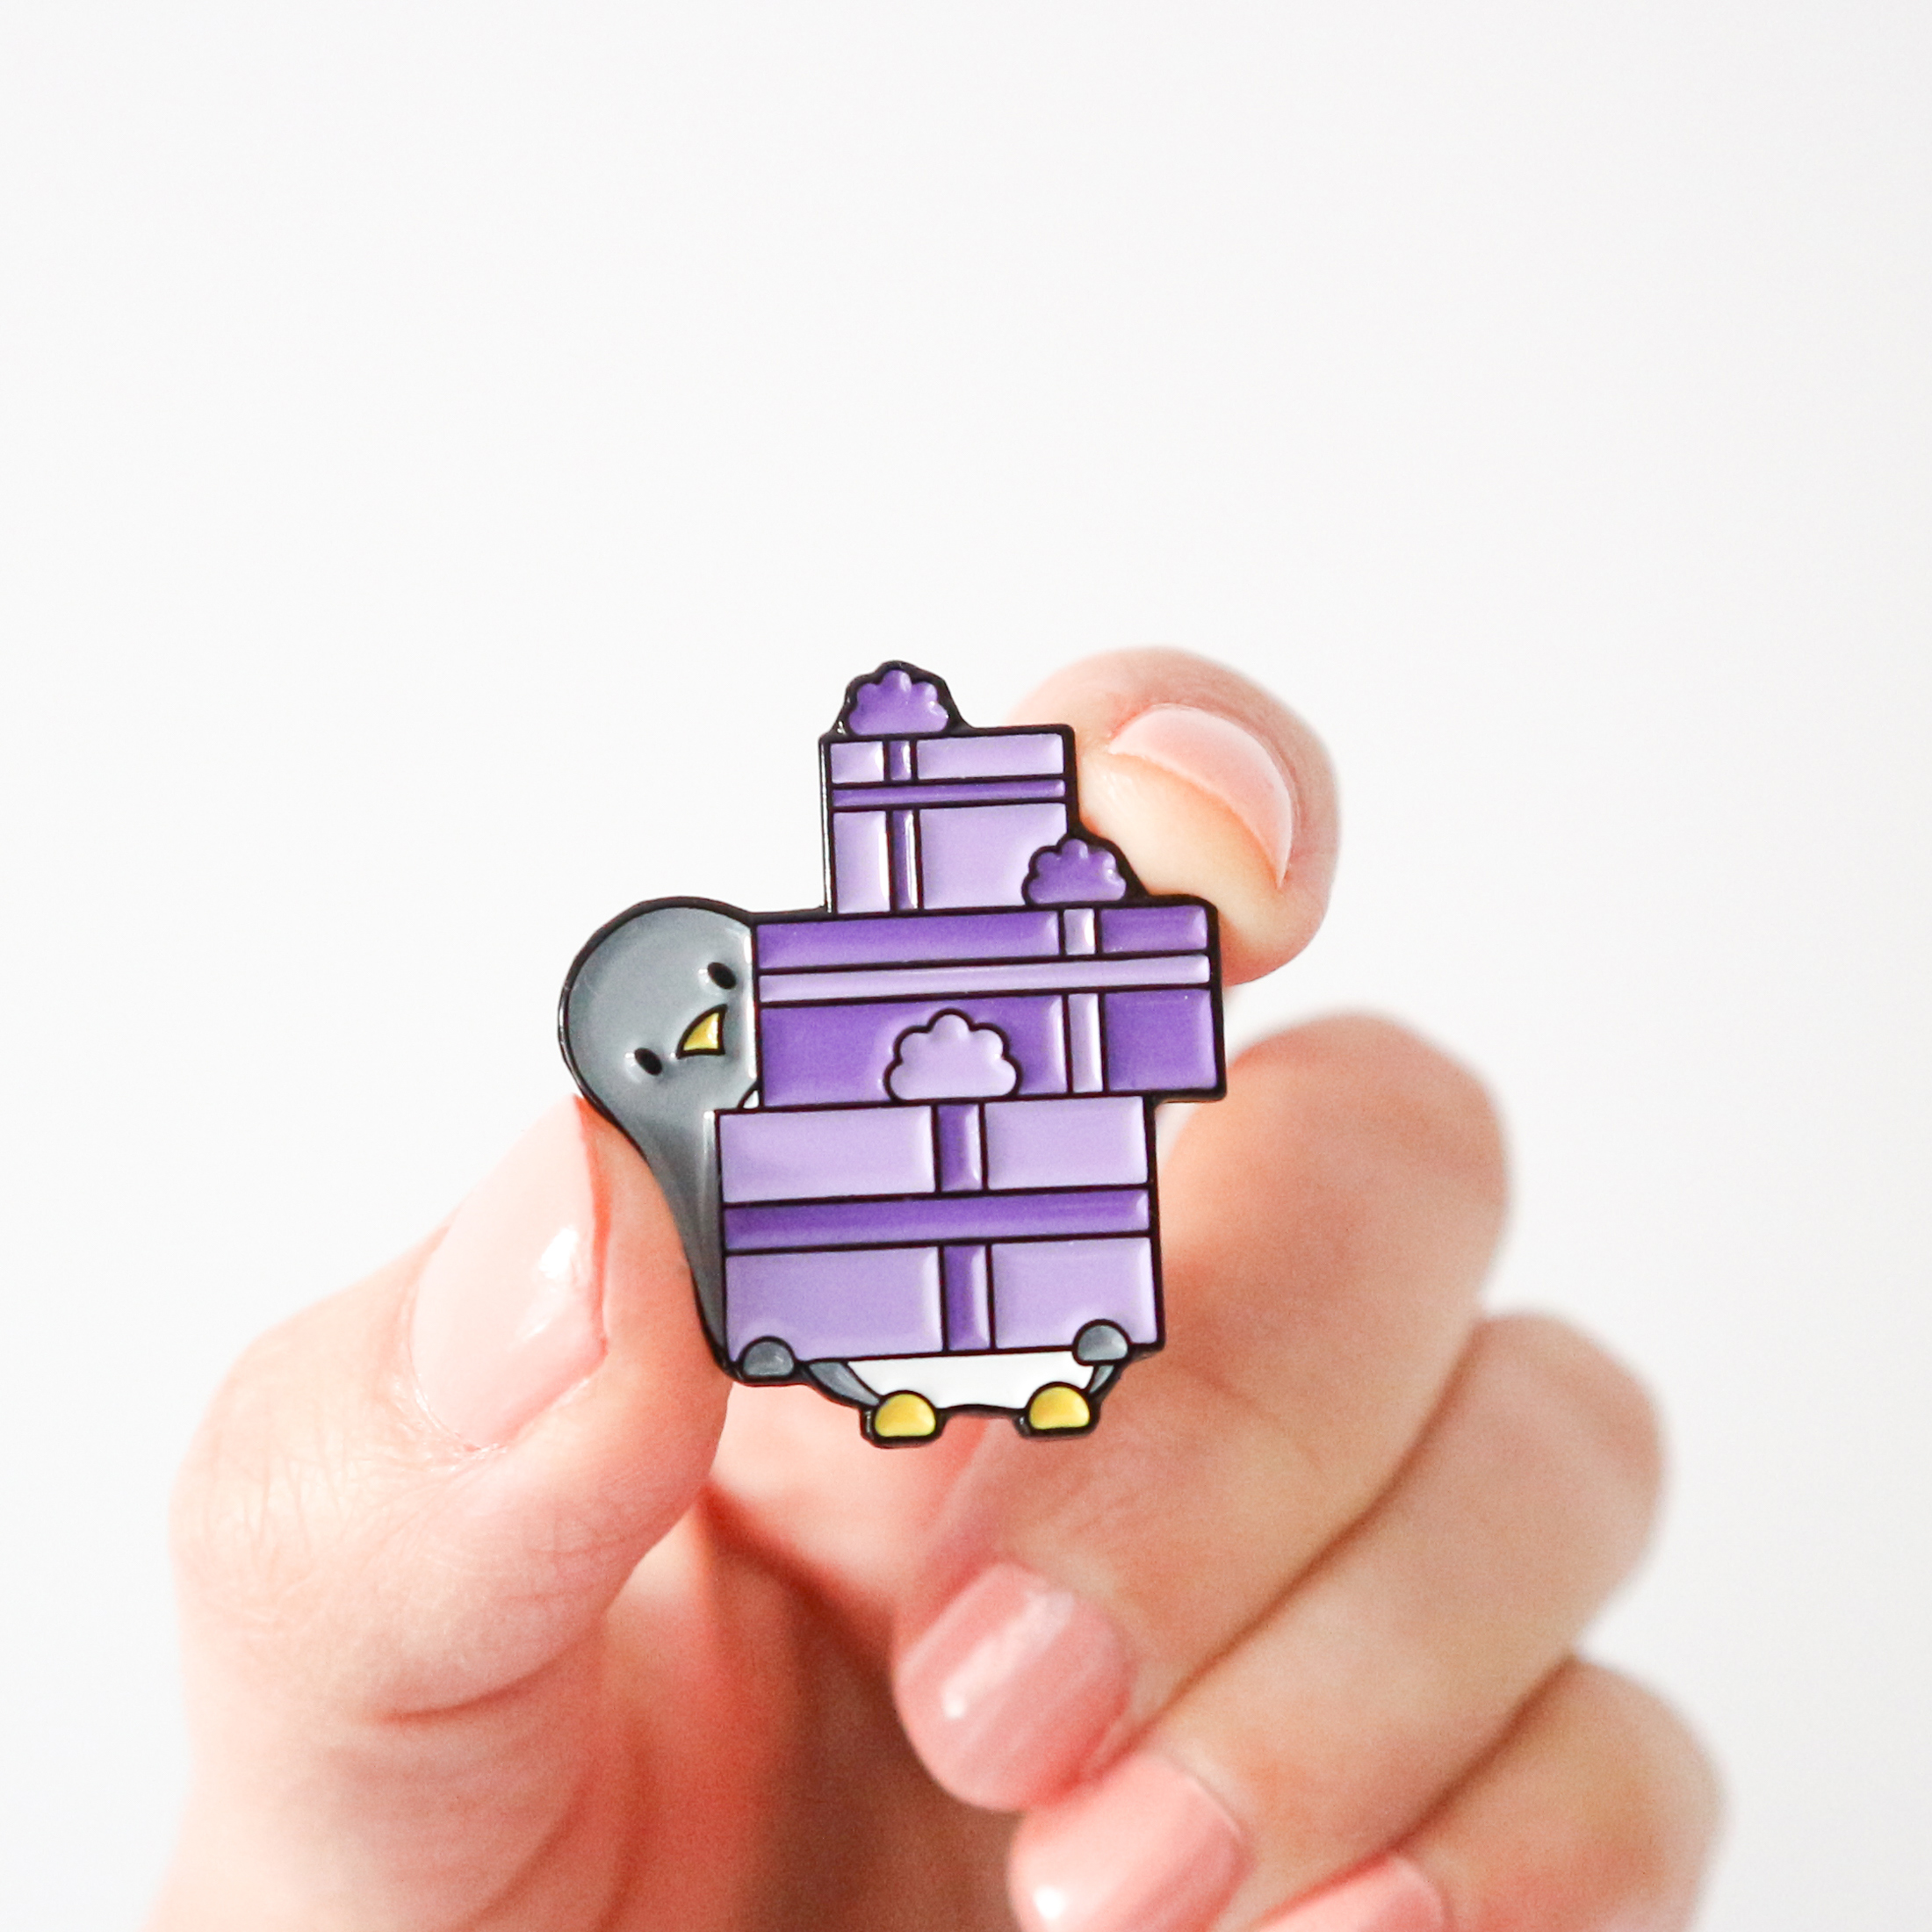 an illustrated enamel pin design of a cute penguin with a big stack of purple gifts, perfect for a birthday. The pin is being held by a hand against a white background.